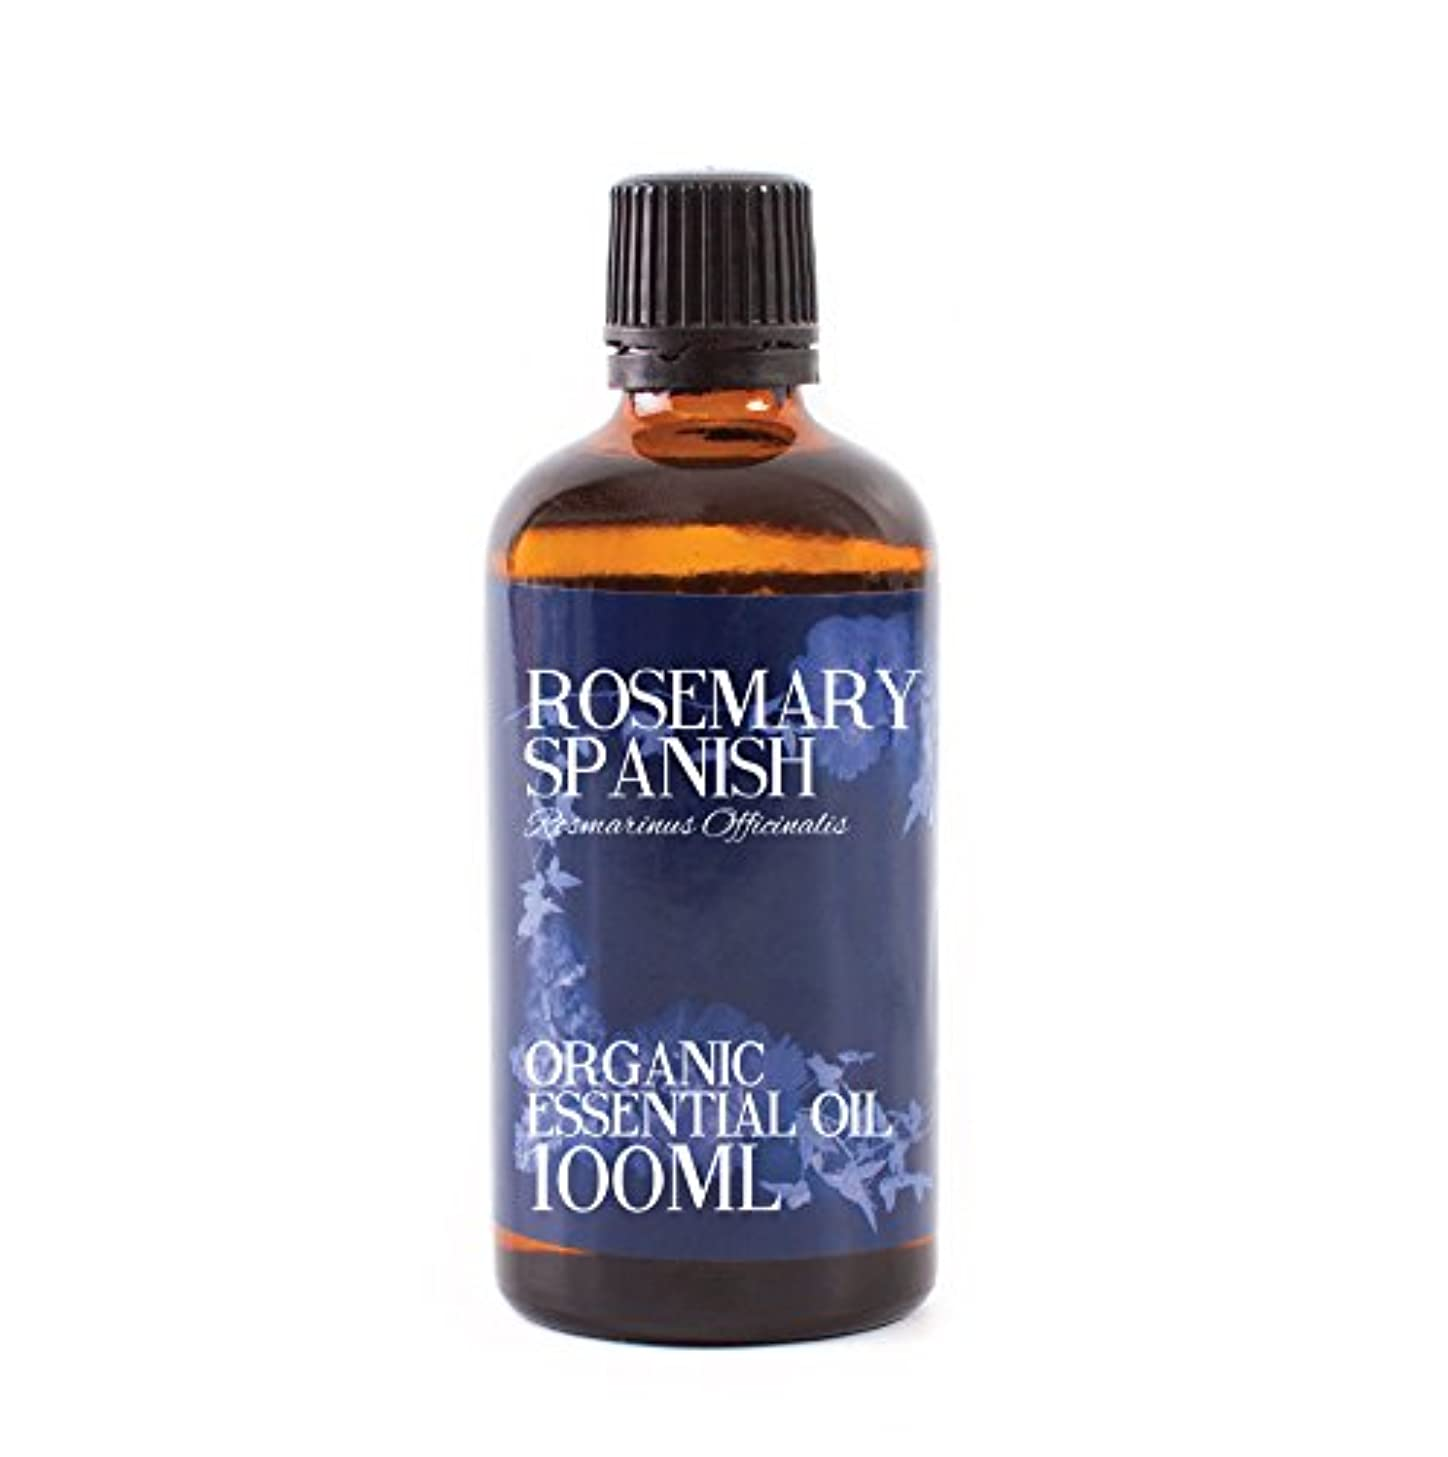 ナースミシンパイプラインMystic Moments | Rosemary Spanish Organic Essential Oil - 100ml - 100% Pure